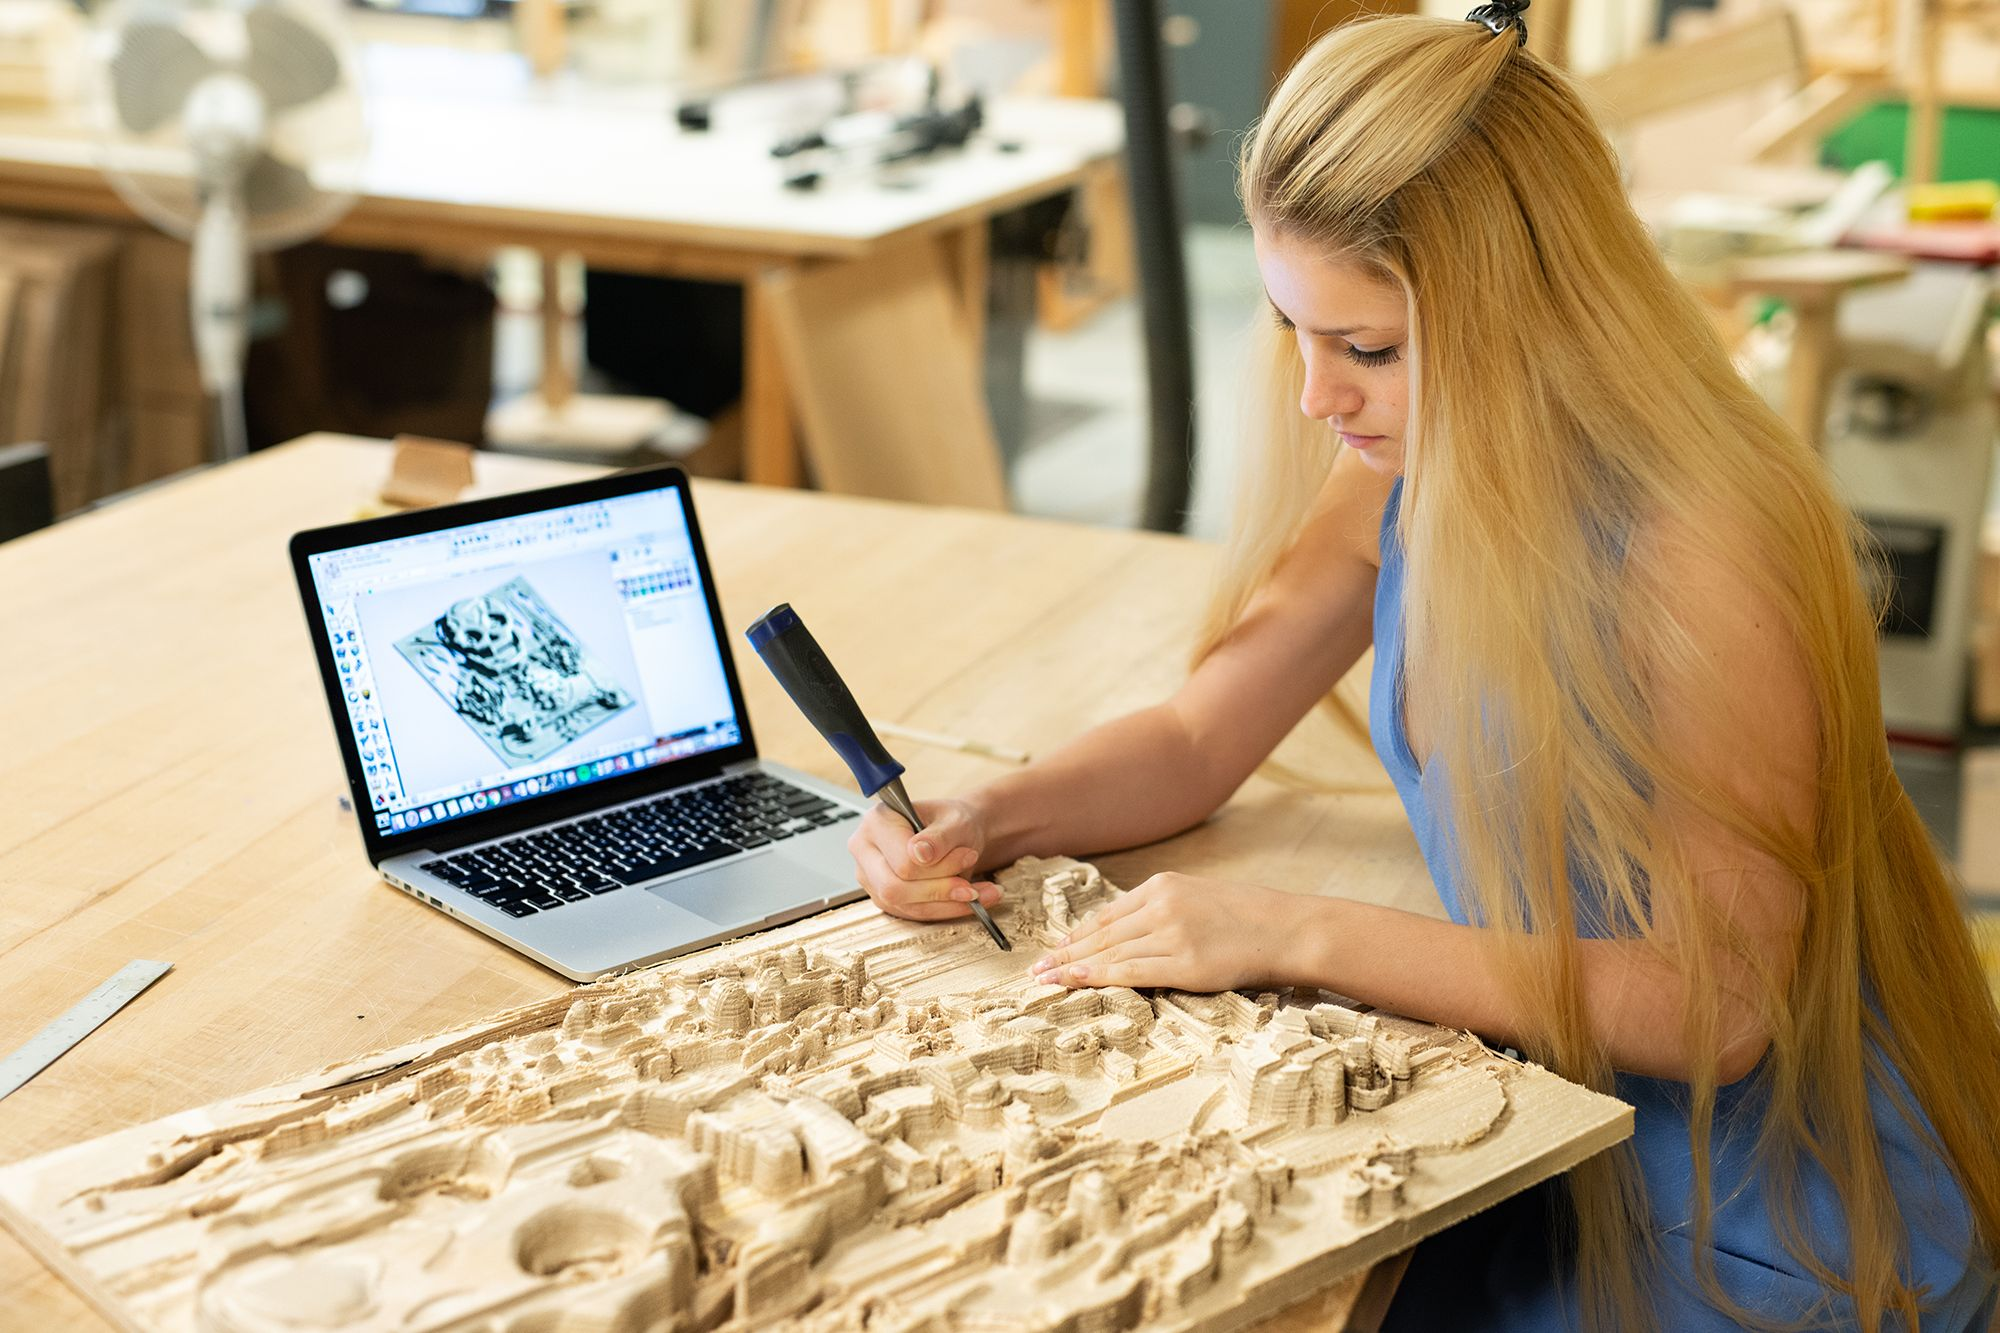 Student carving a wooden relief project on tabletop.